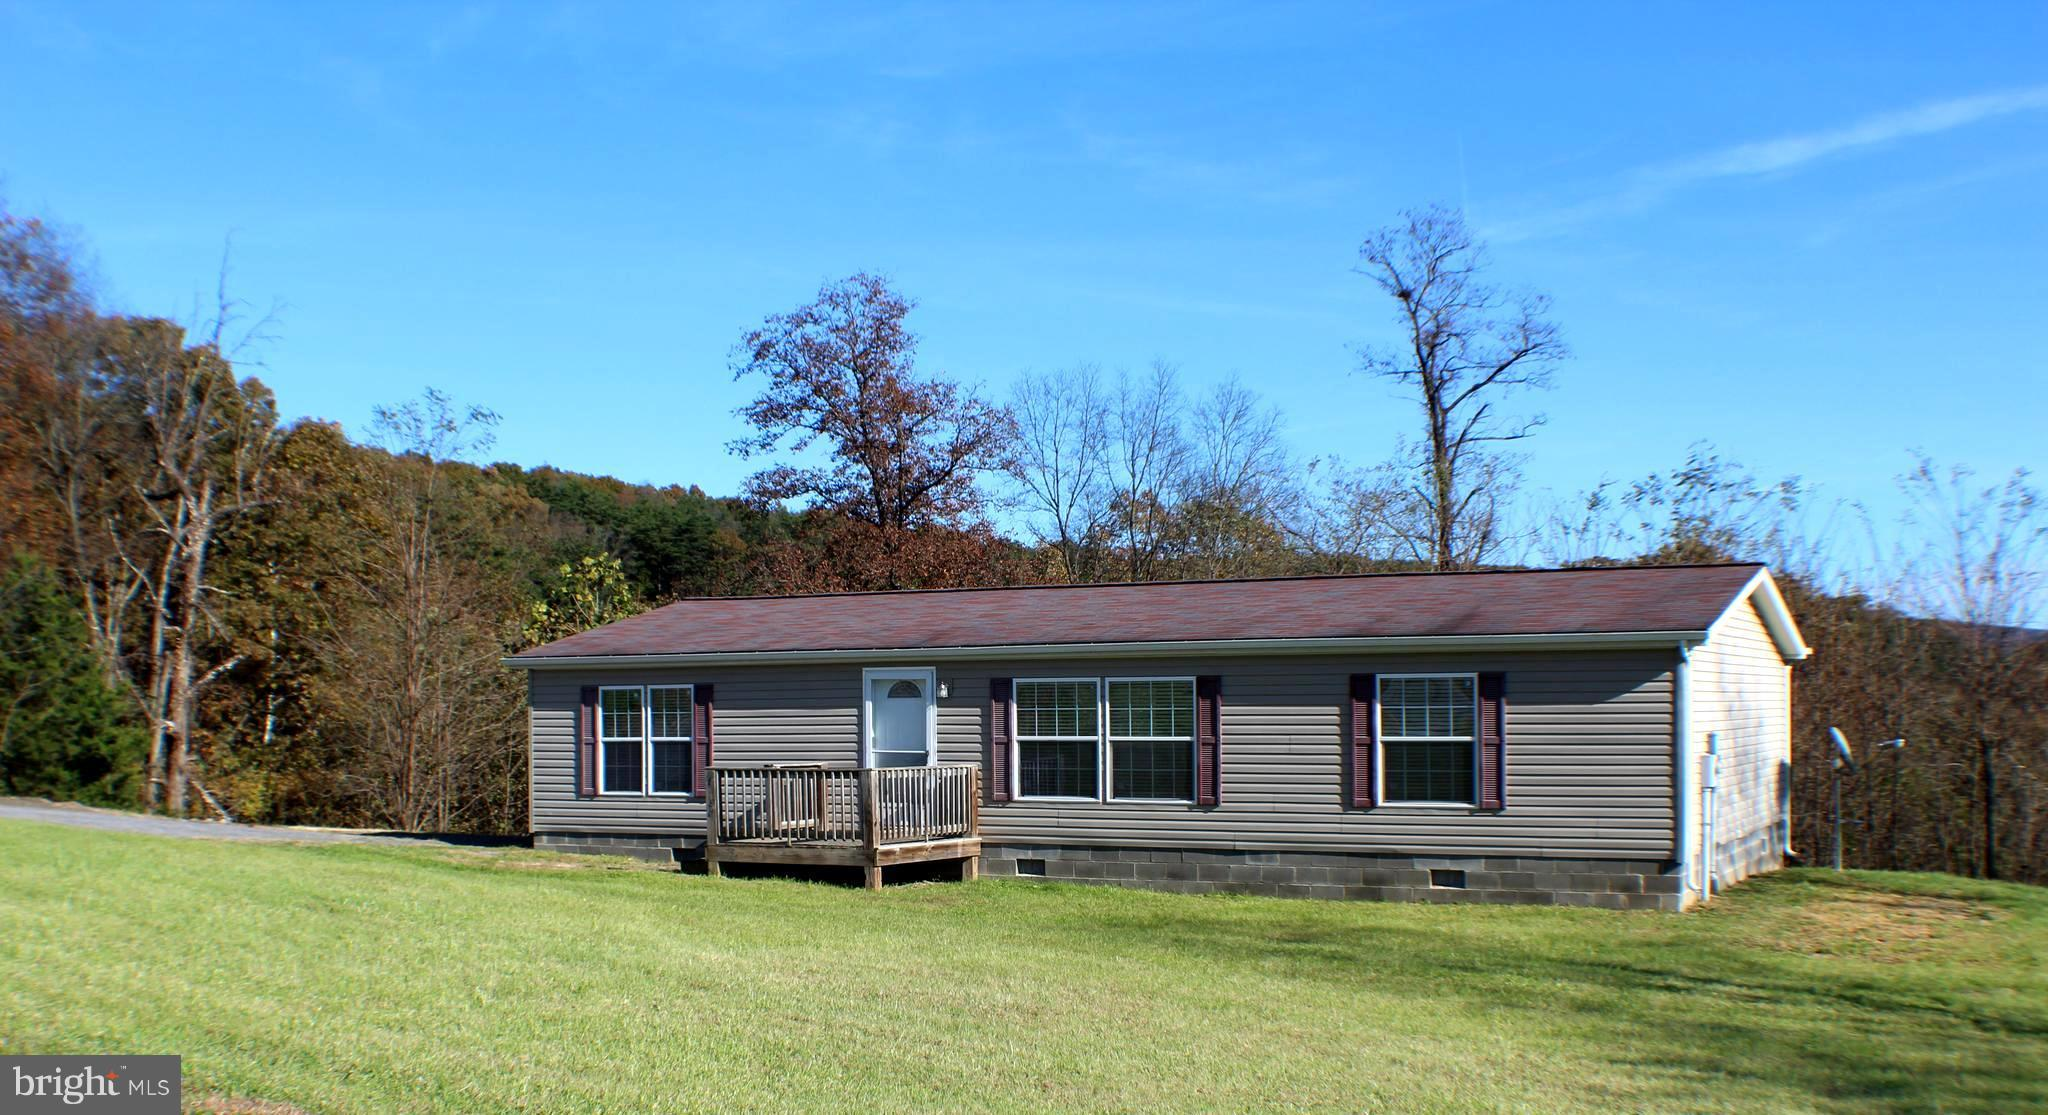 1039 HIGH POINT DRIVE, MAYSVILLE, WV 26833